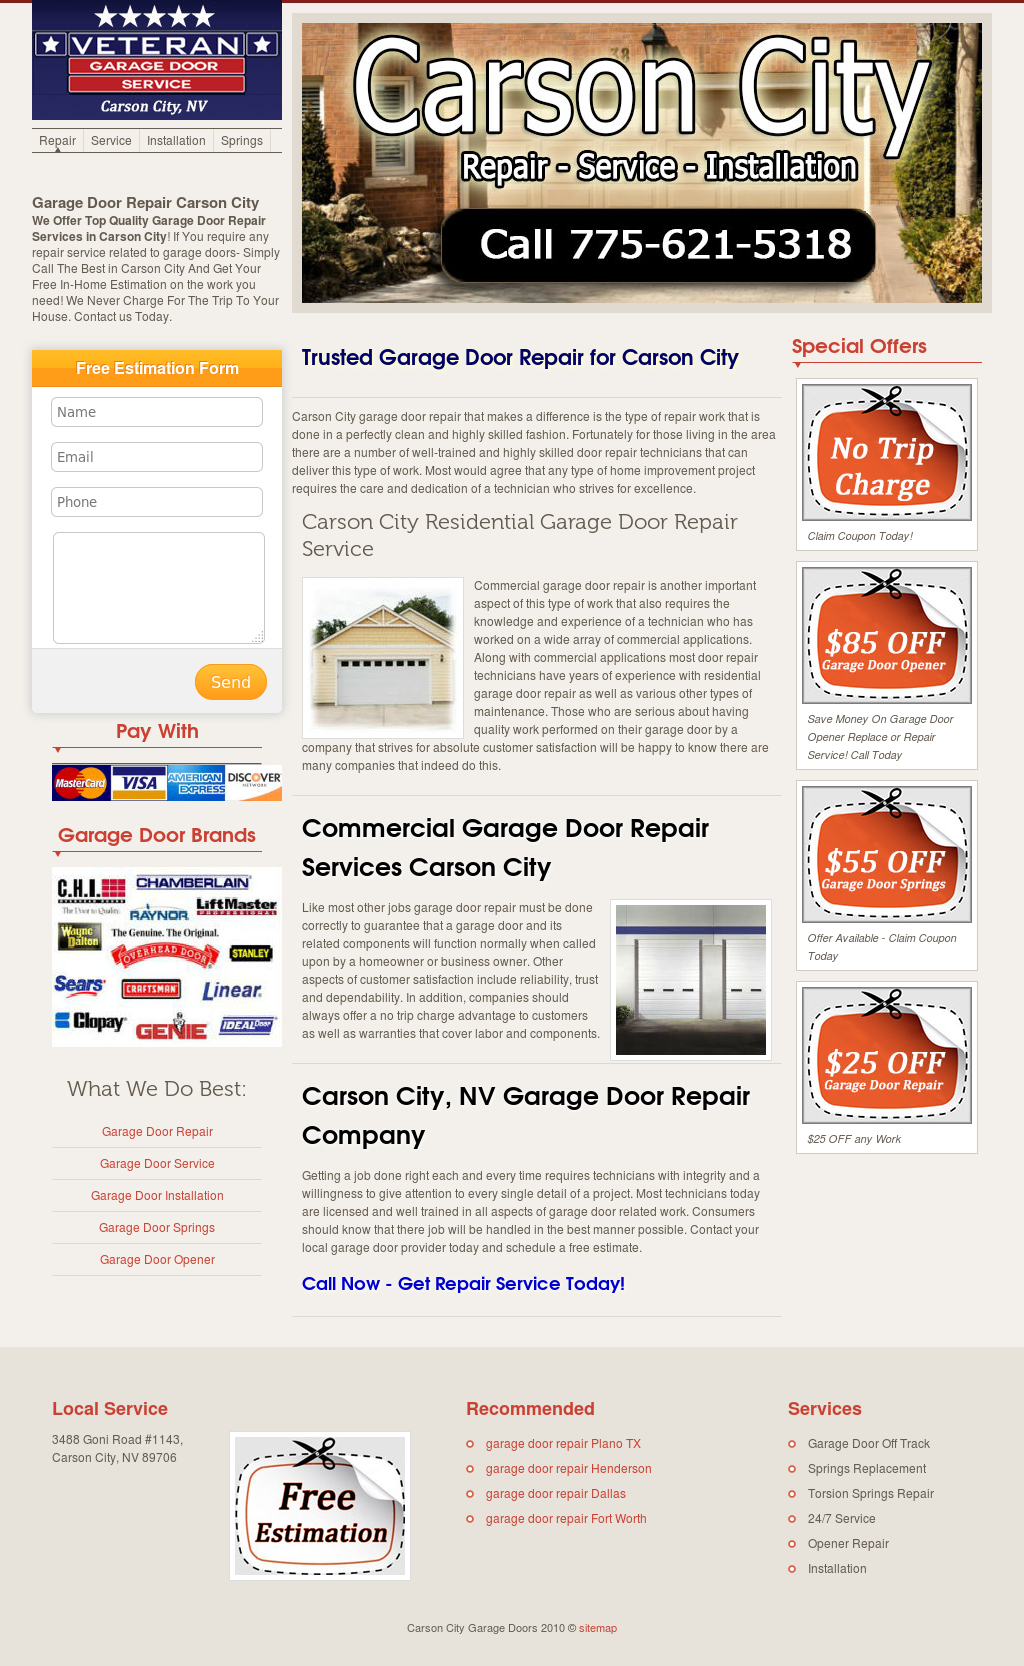 Carson City Garage Doors Website History